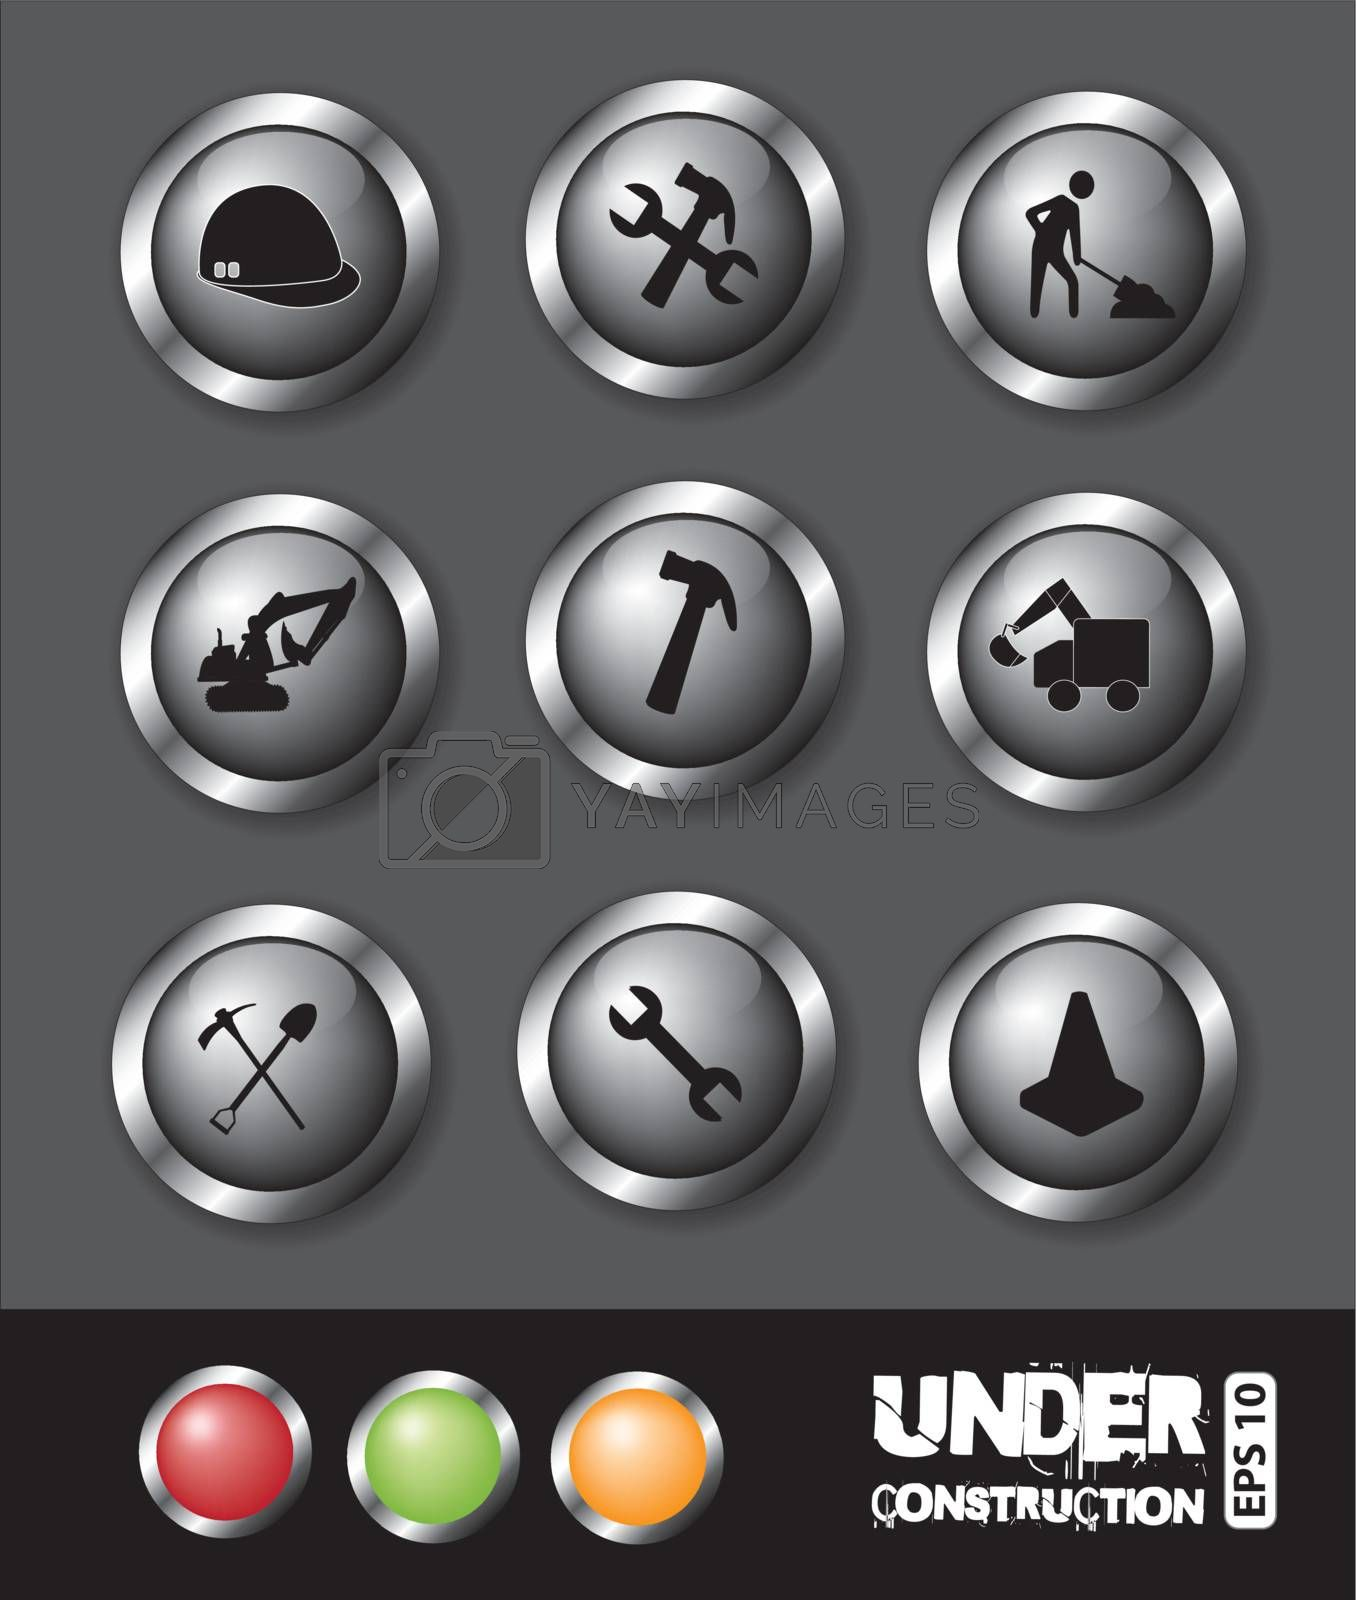 under construction icons of buttons over gray background